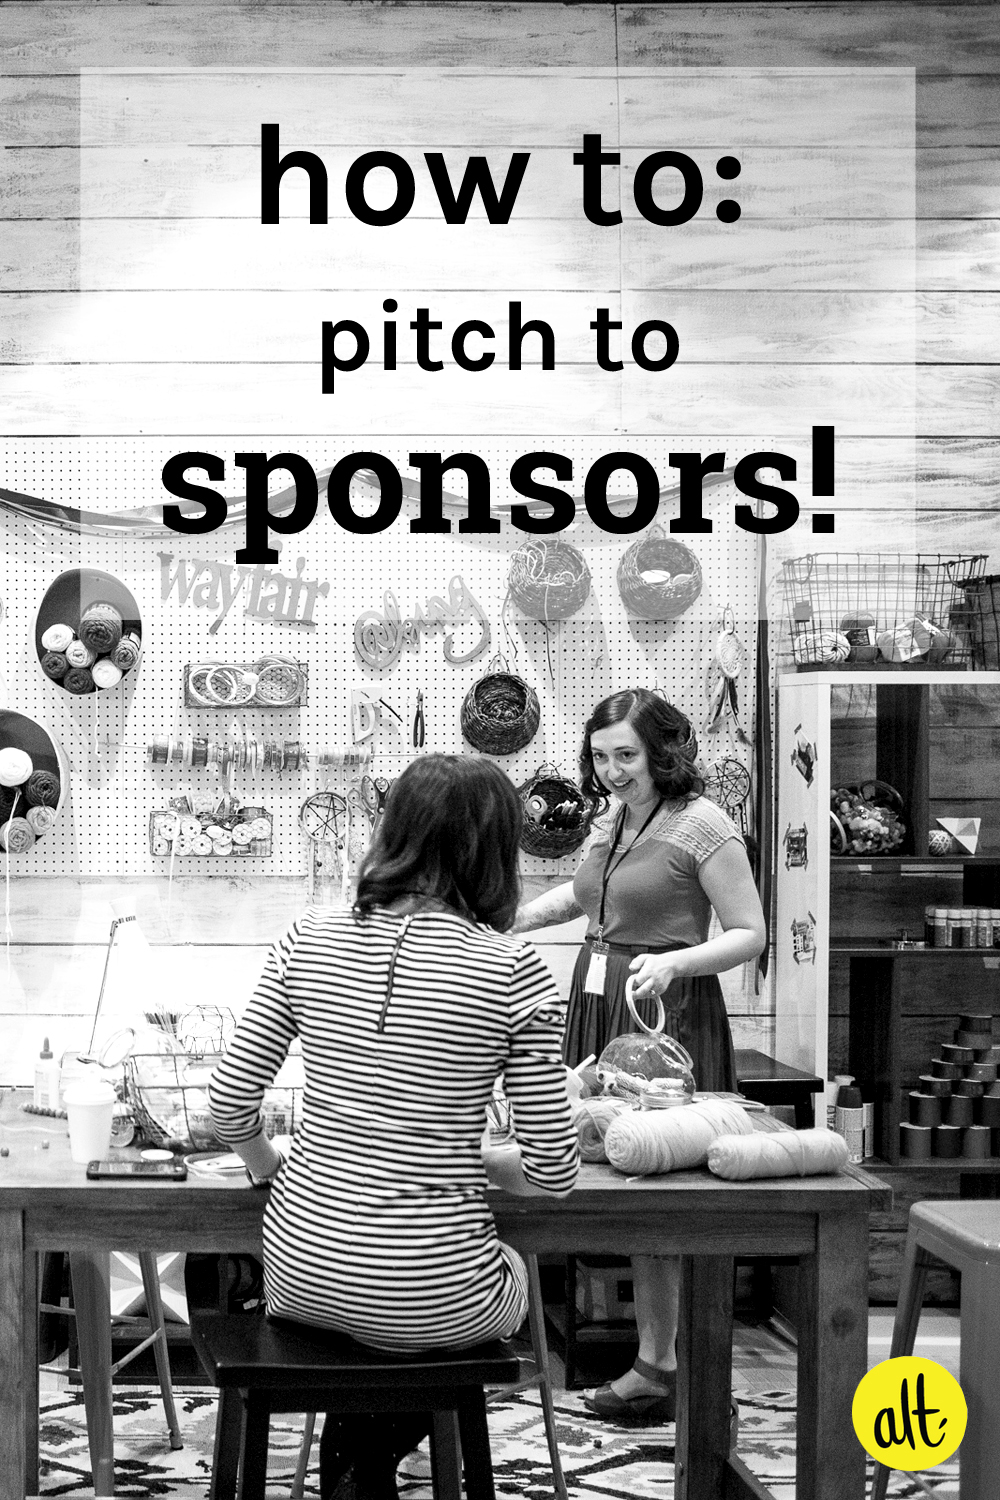 Advice for pitching to brands and sponsors